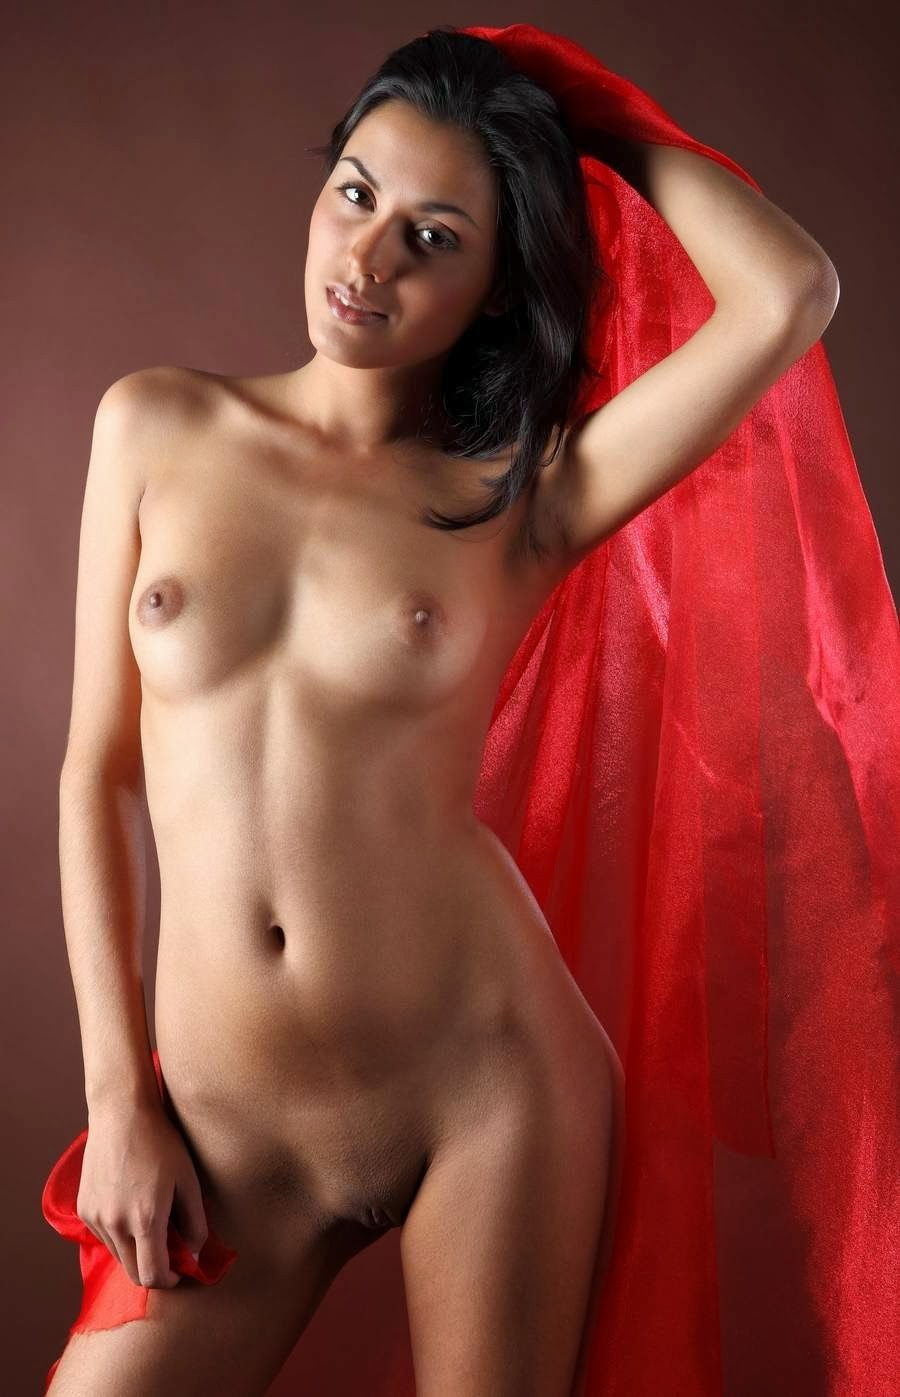 Hot nude indian models photo shoot